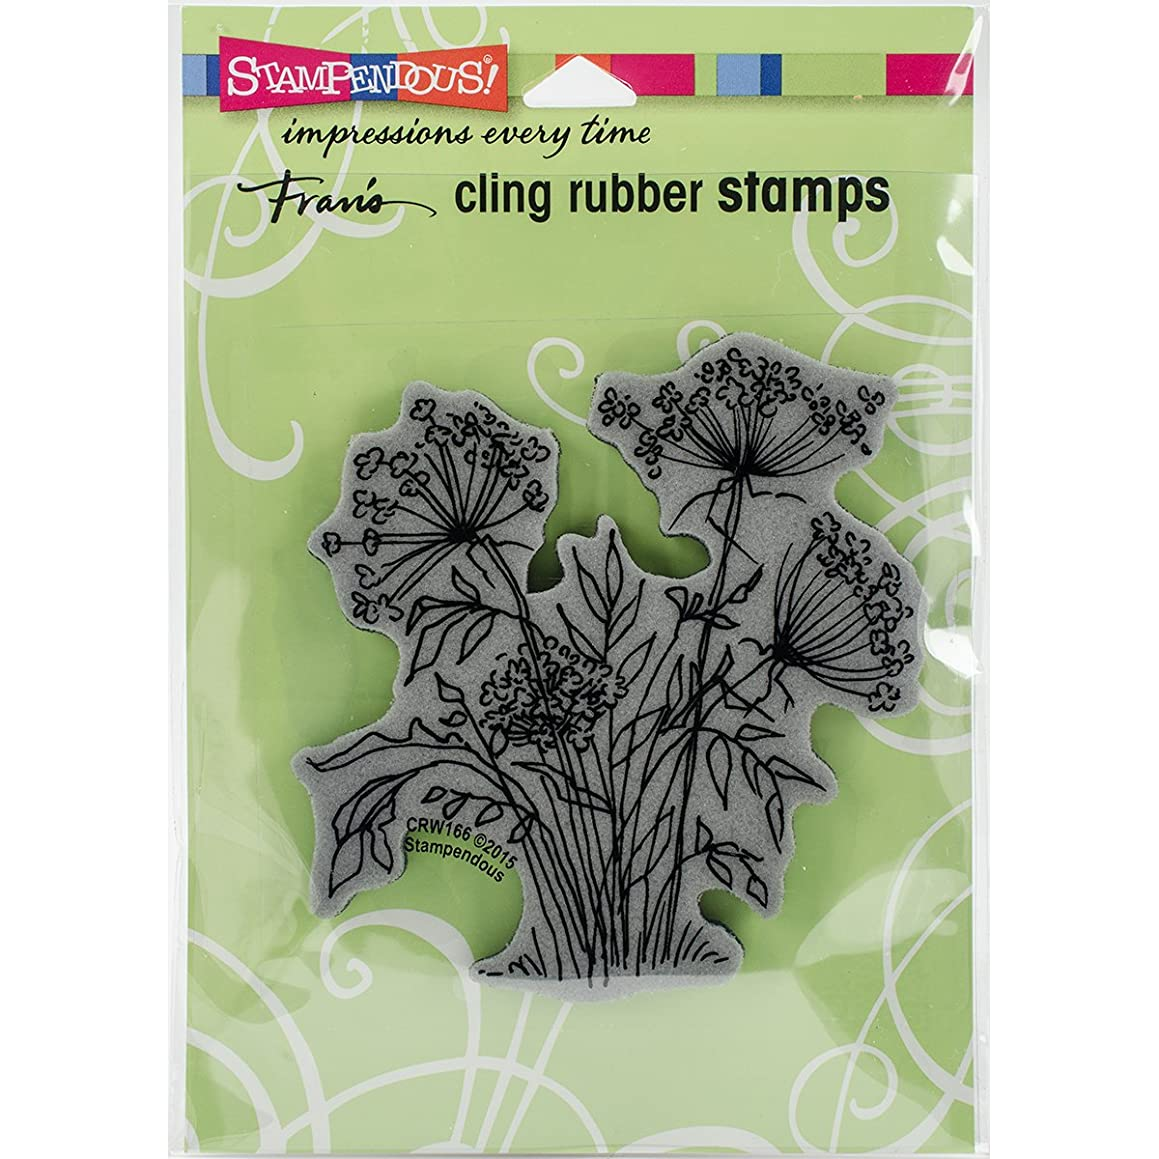 STAMPENDOUS Queen Anne's Lace Rubber Stamp Cling